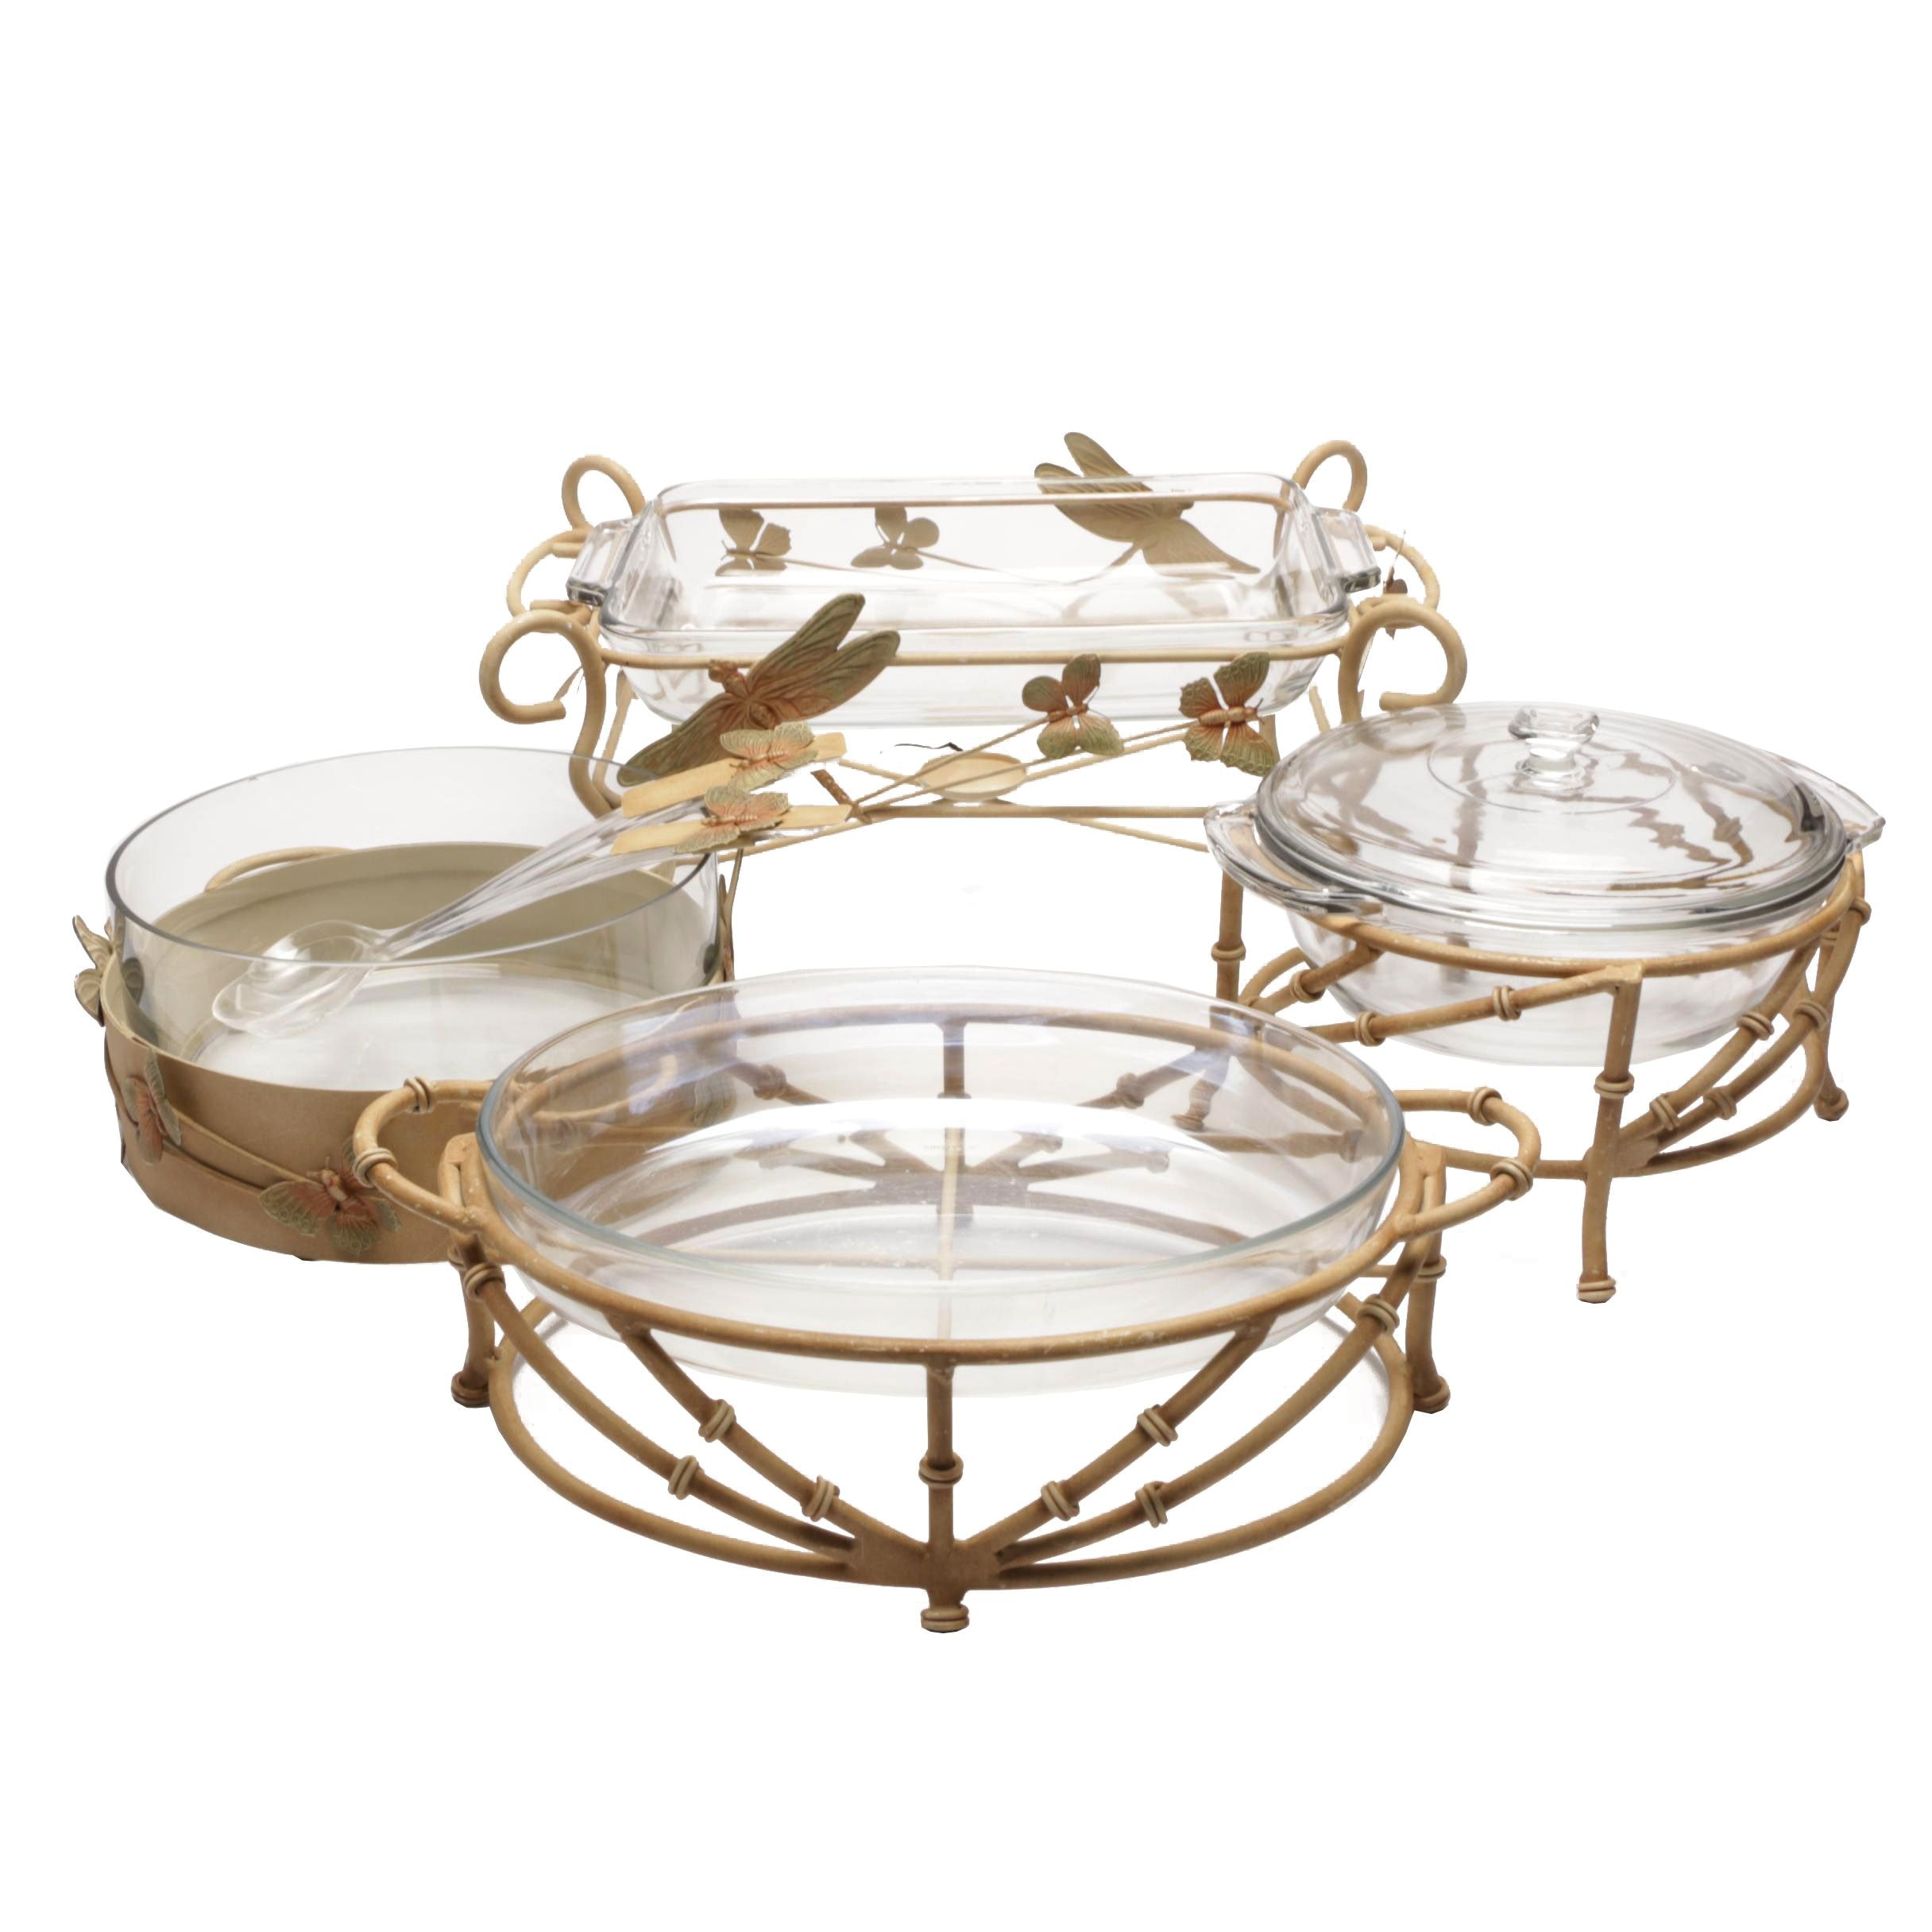 Five Piece Buffet Serving Set with Plastic Serving Spoons